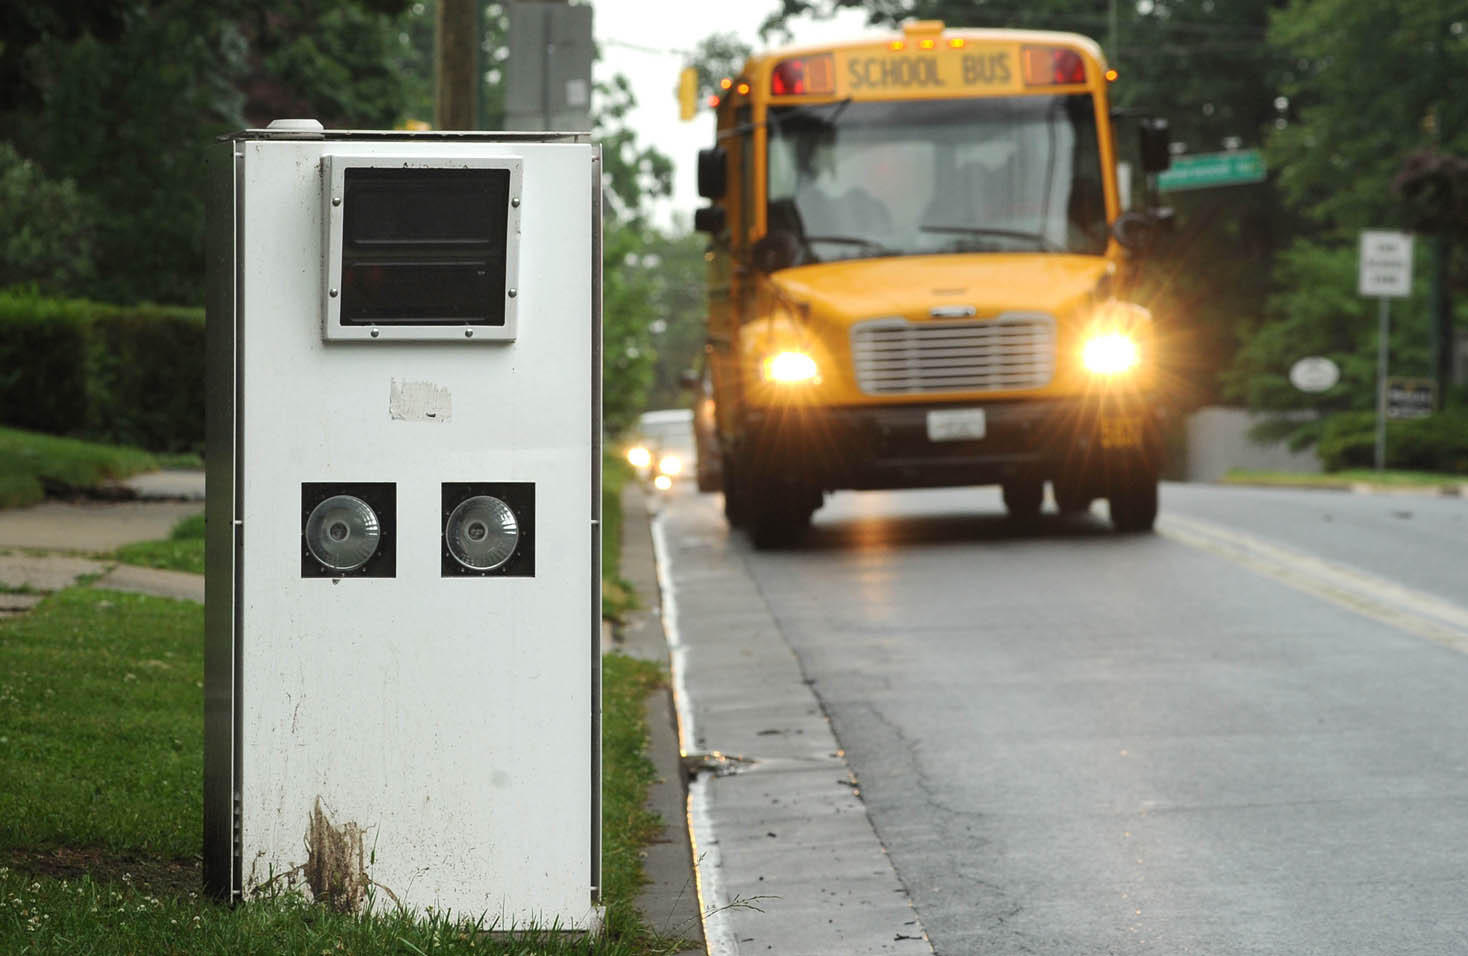 Speed cameras similar to this one have been in operation in Annapolis since April 2013.